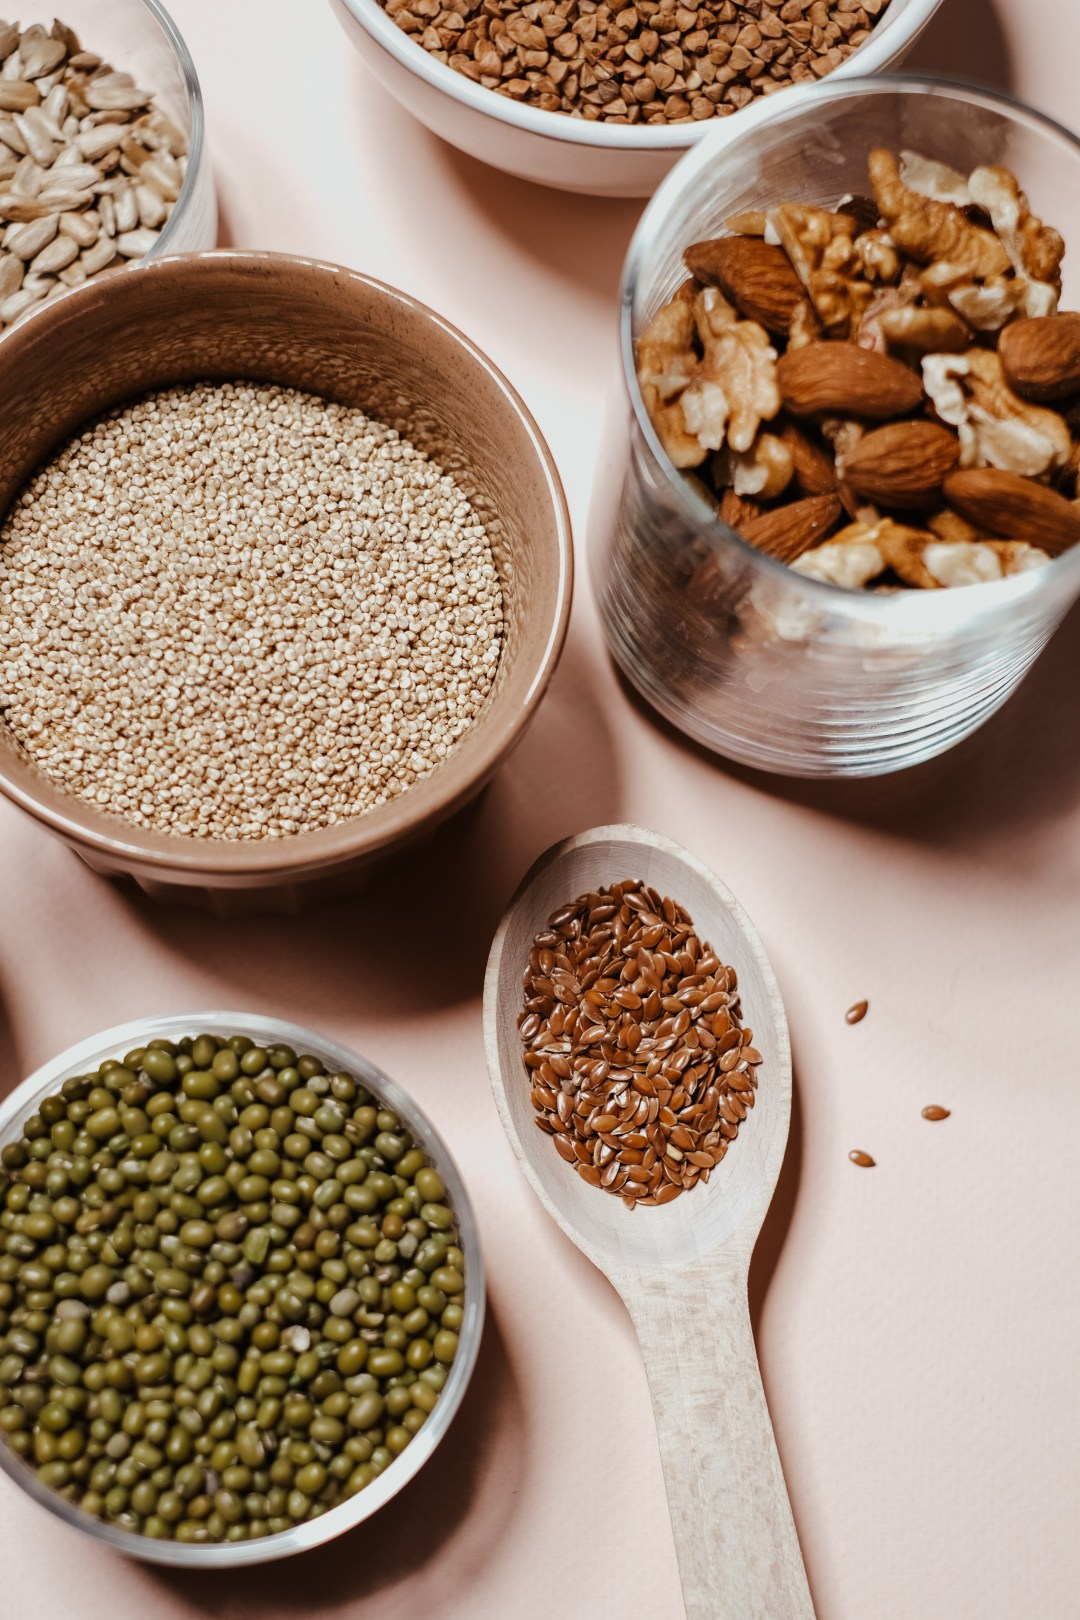 Grains are filled with iron and is an essential vitamin and mineral to your health.